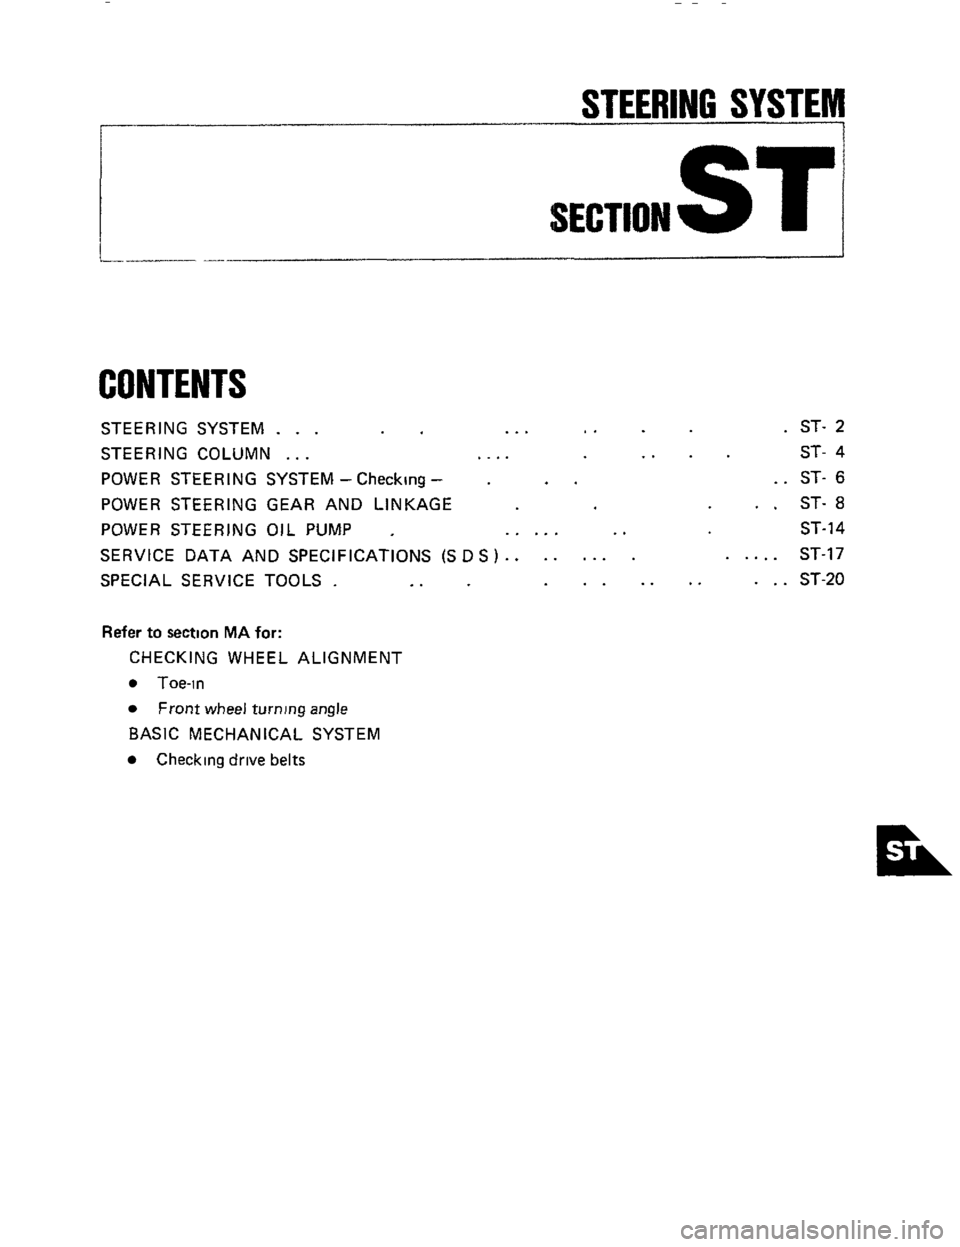 NISSAN 300ZX 1984 Z31 Steering System Workshop Manual, Page 1